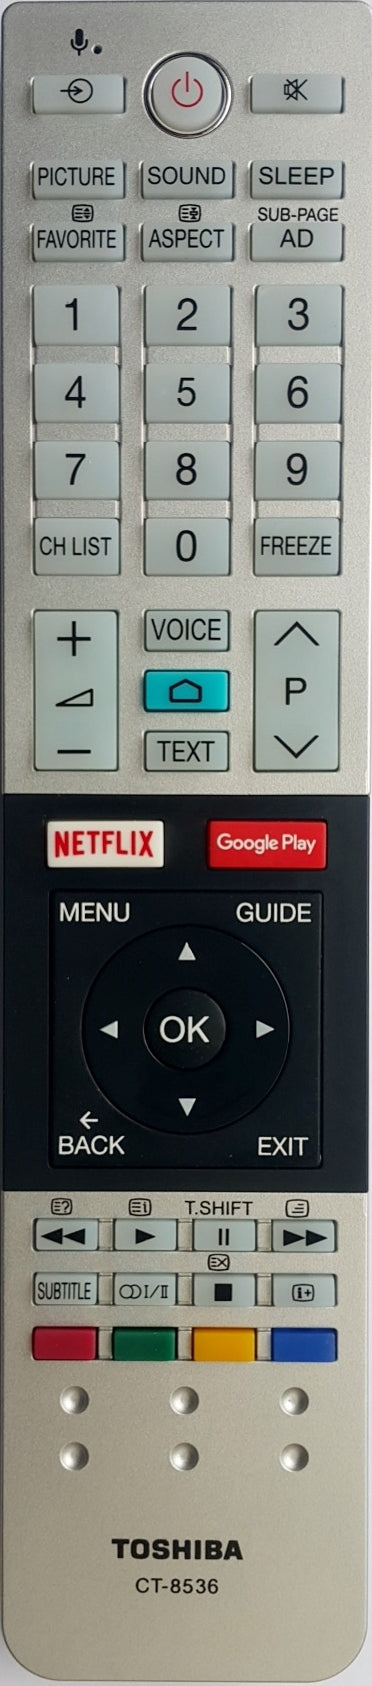 ORIGINAL TOSHIBA REMOTE CONTROL CT-8536 CT8536 - 65U9850AZ  U9850*SERIES ULTRA-HD ANDROID TV - Remote Control Warehouse